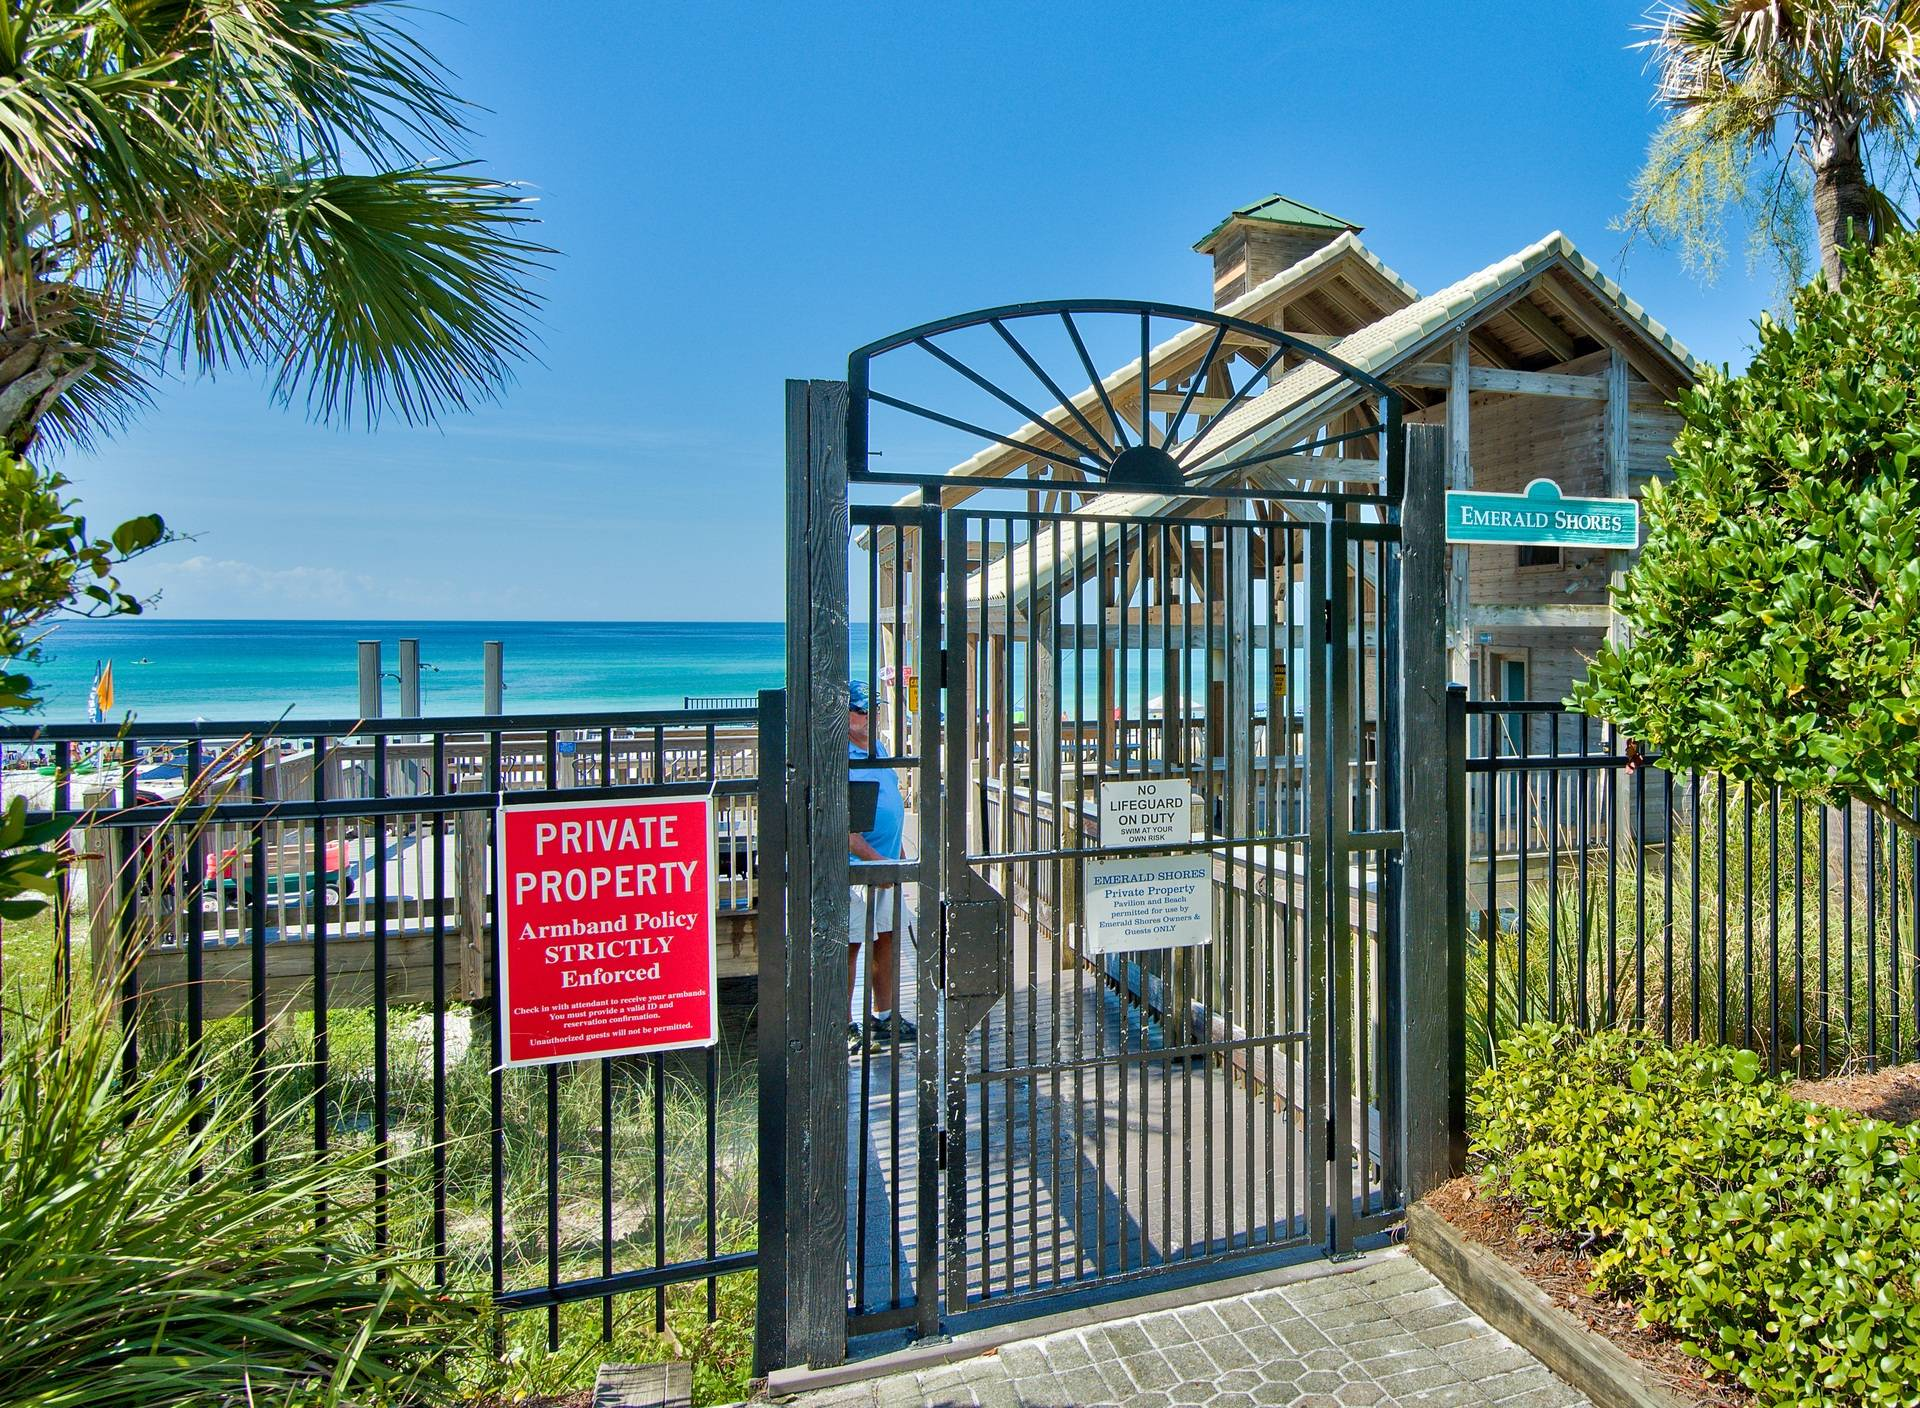 Private Beach Access for Emerald Shores guests